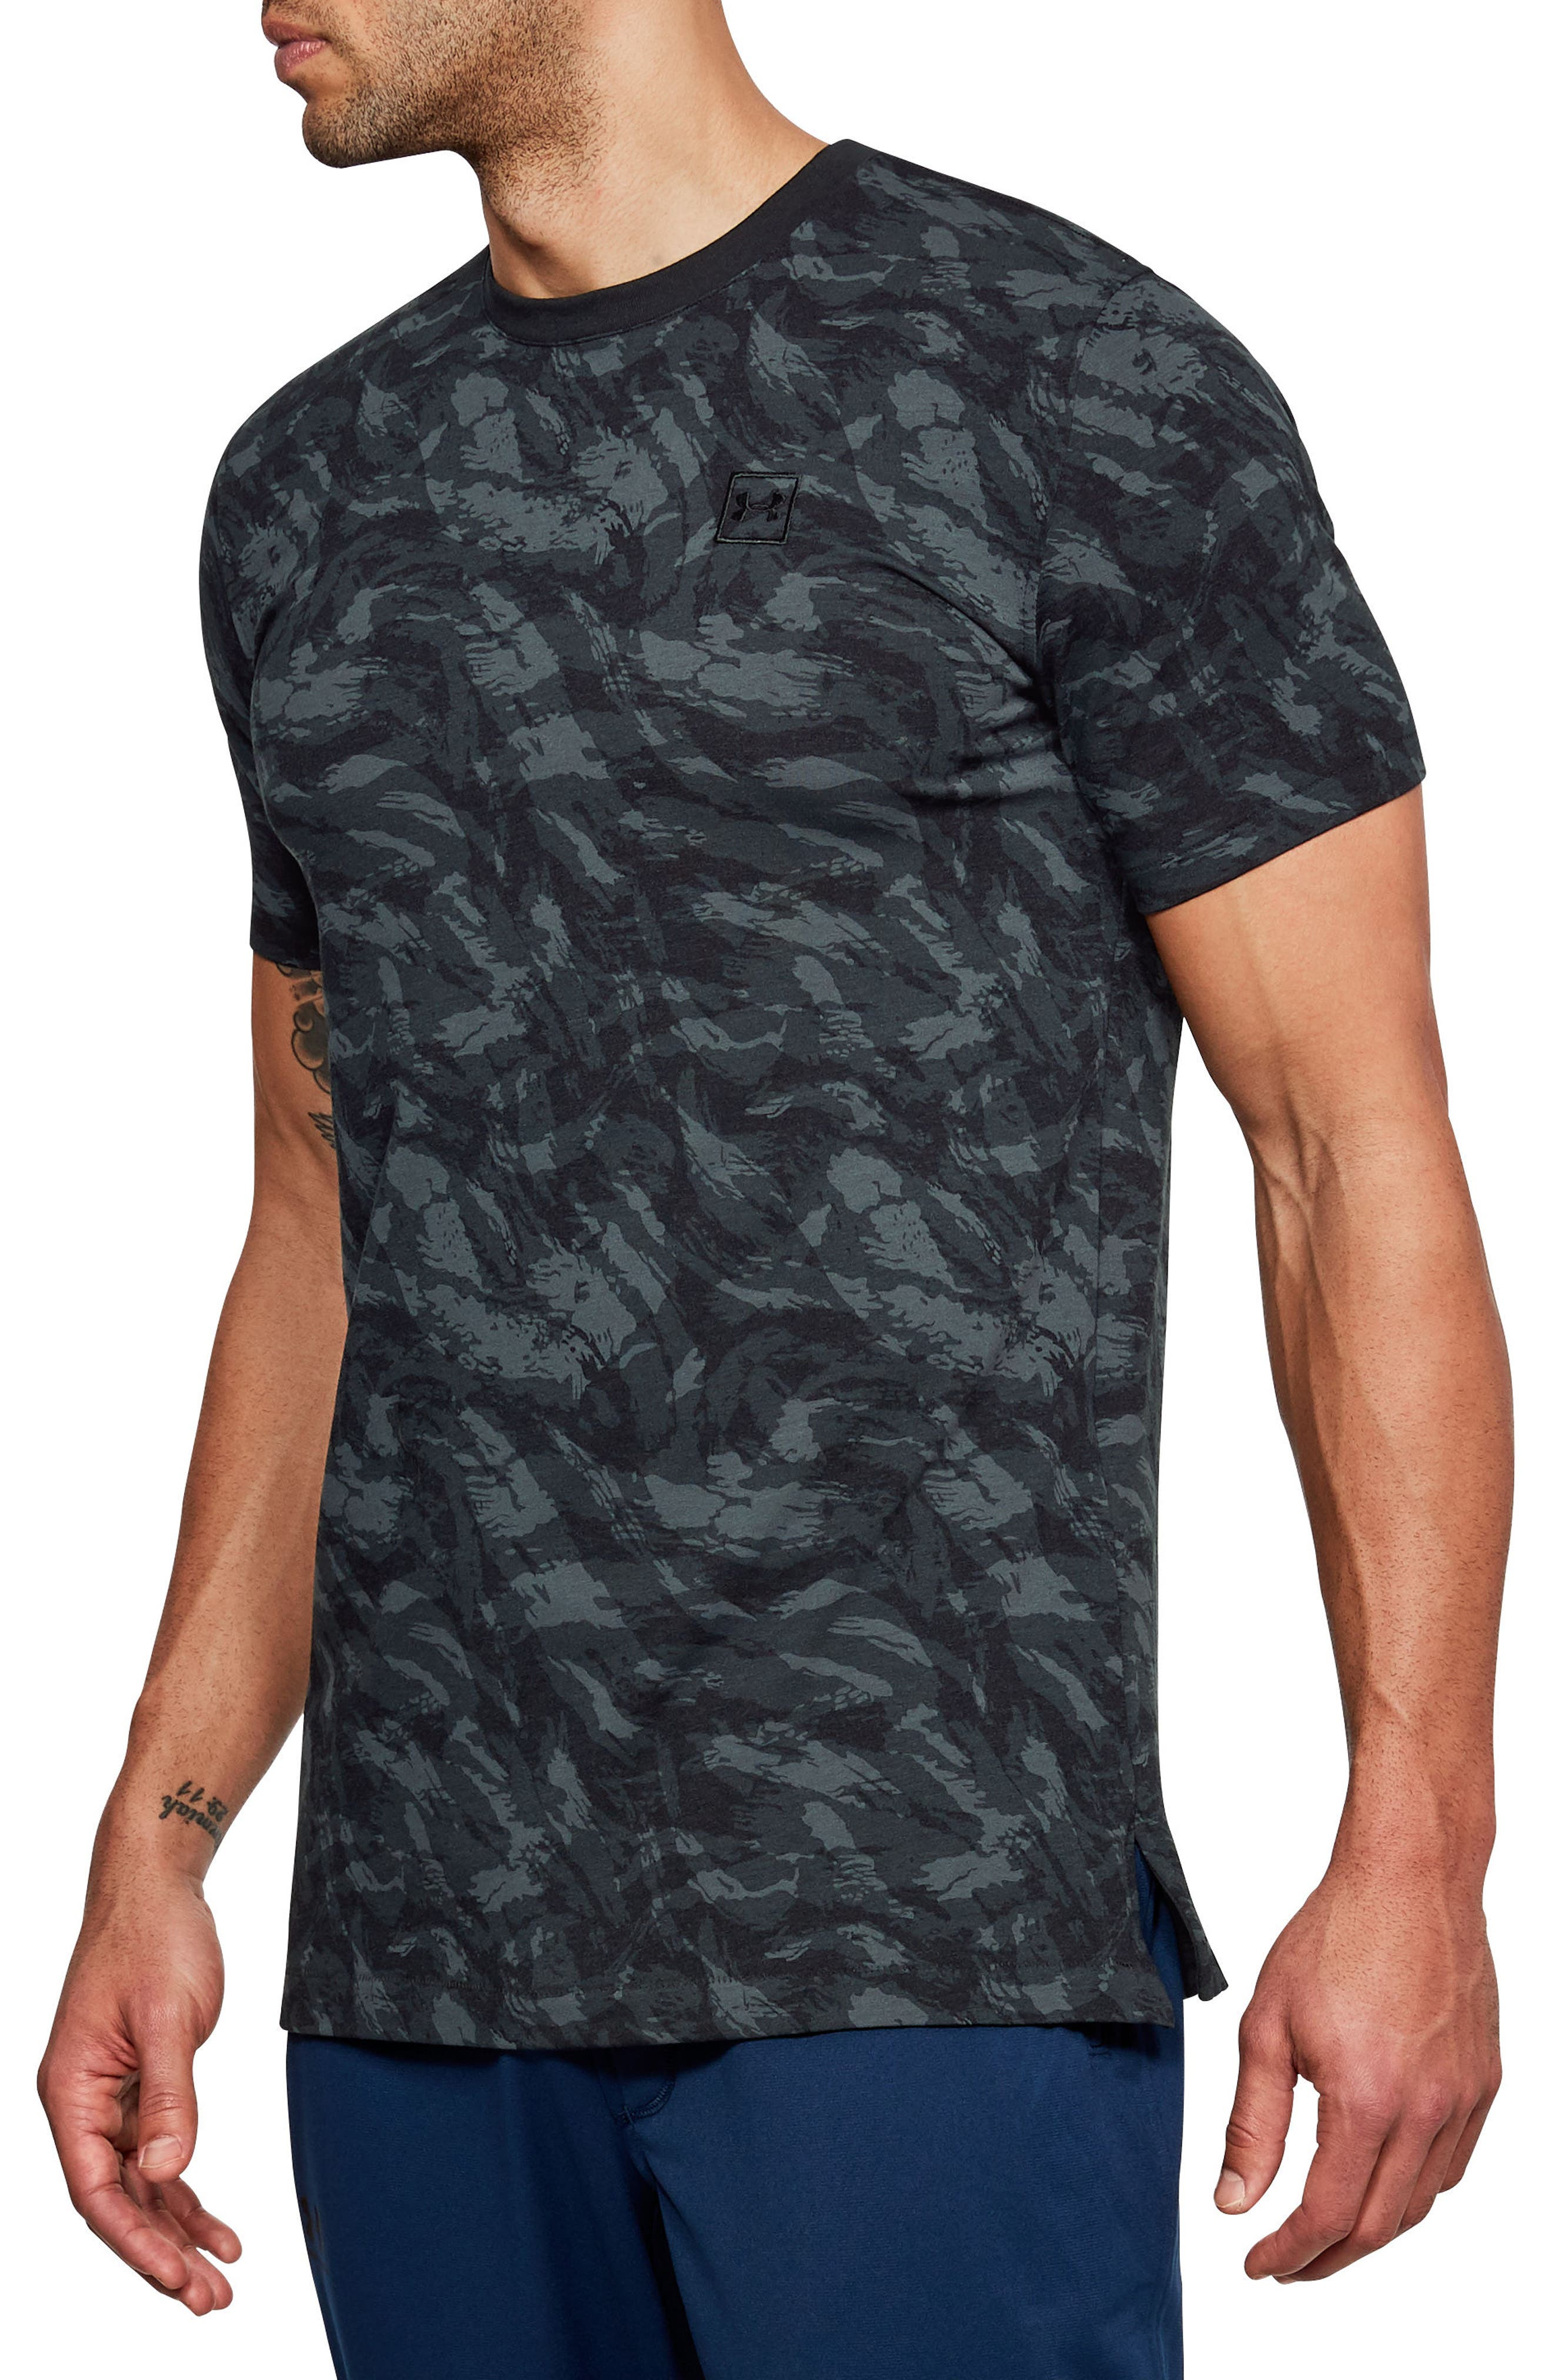 Sportstyle Print Charged Cotton<sup>®</sup> Fitted T-Shirt,                             Main thumbnail 1, color,                             Black/ Black